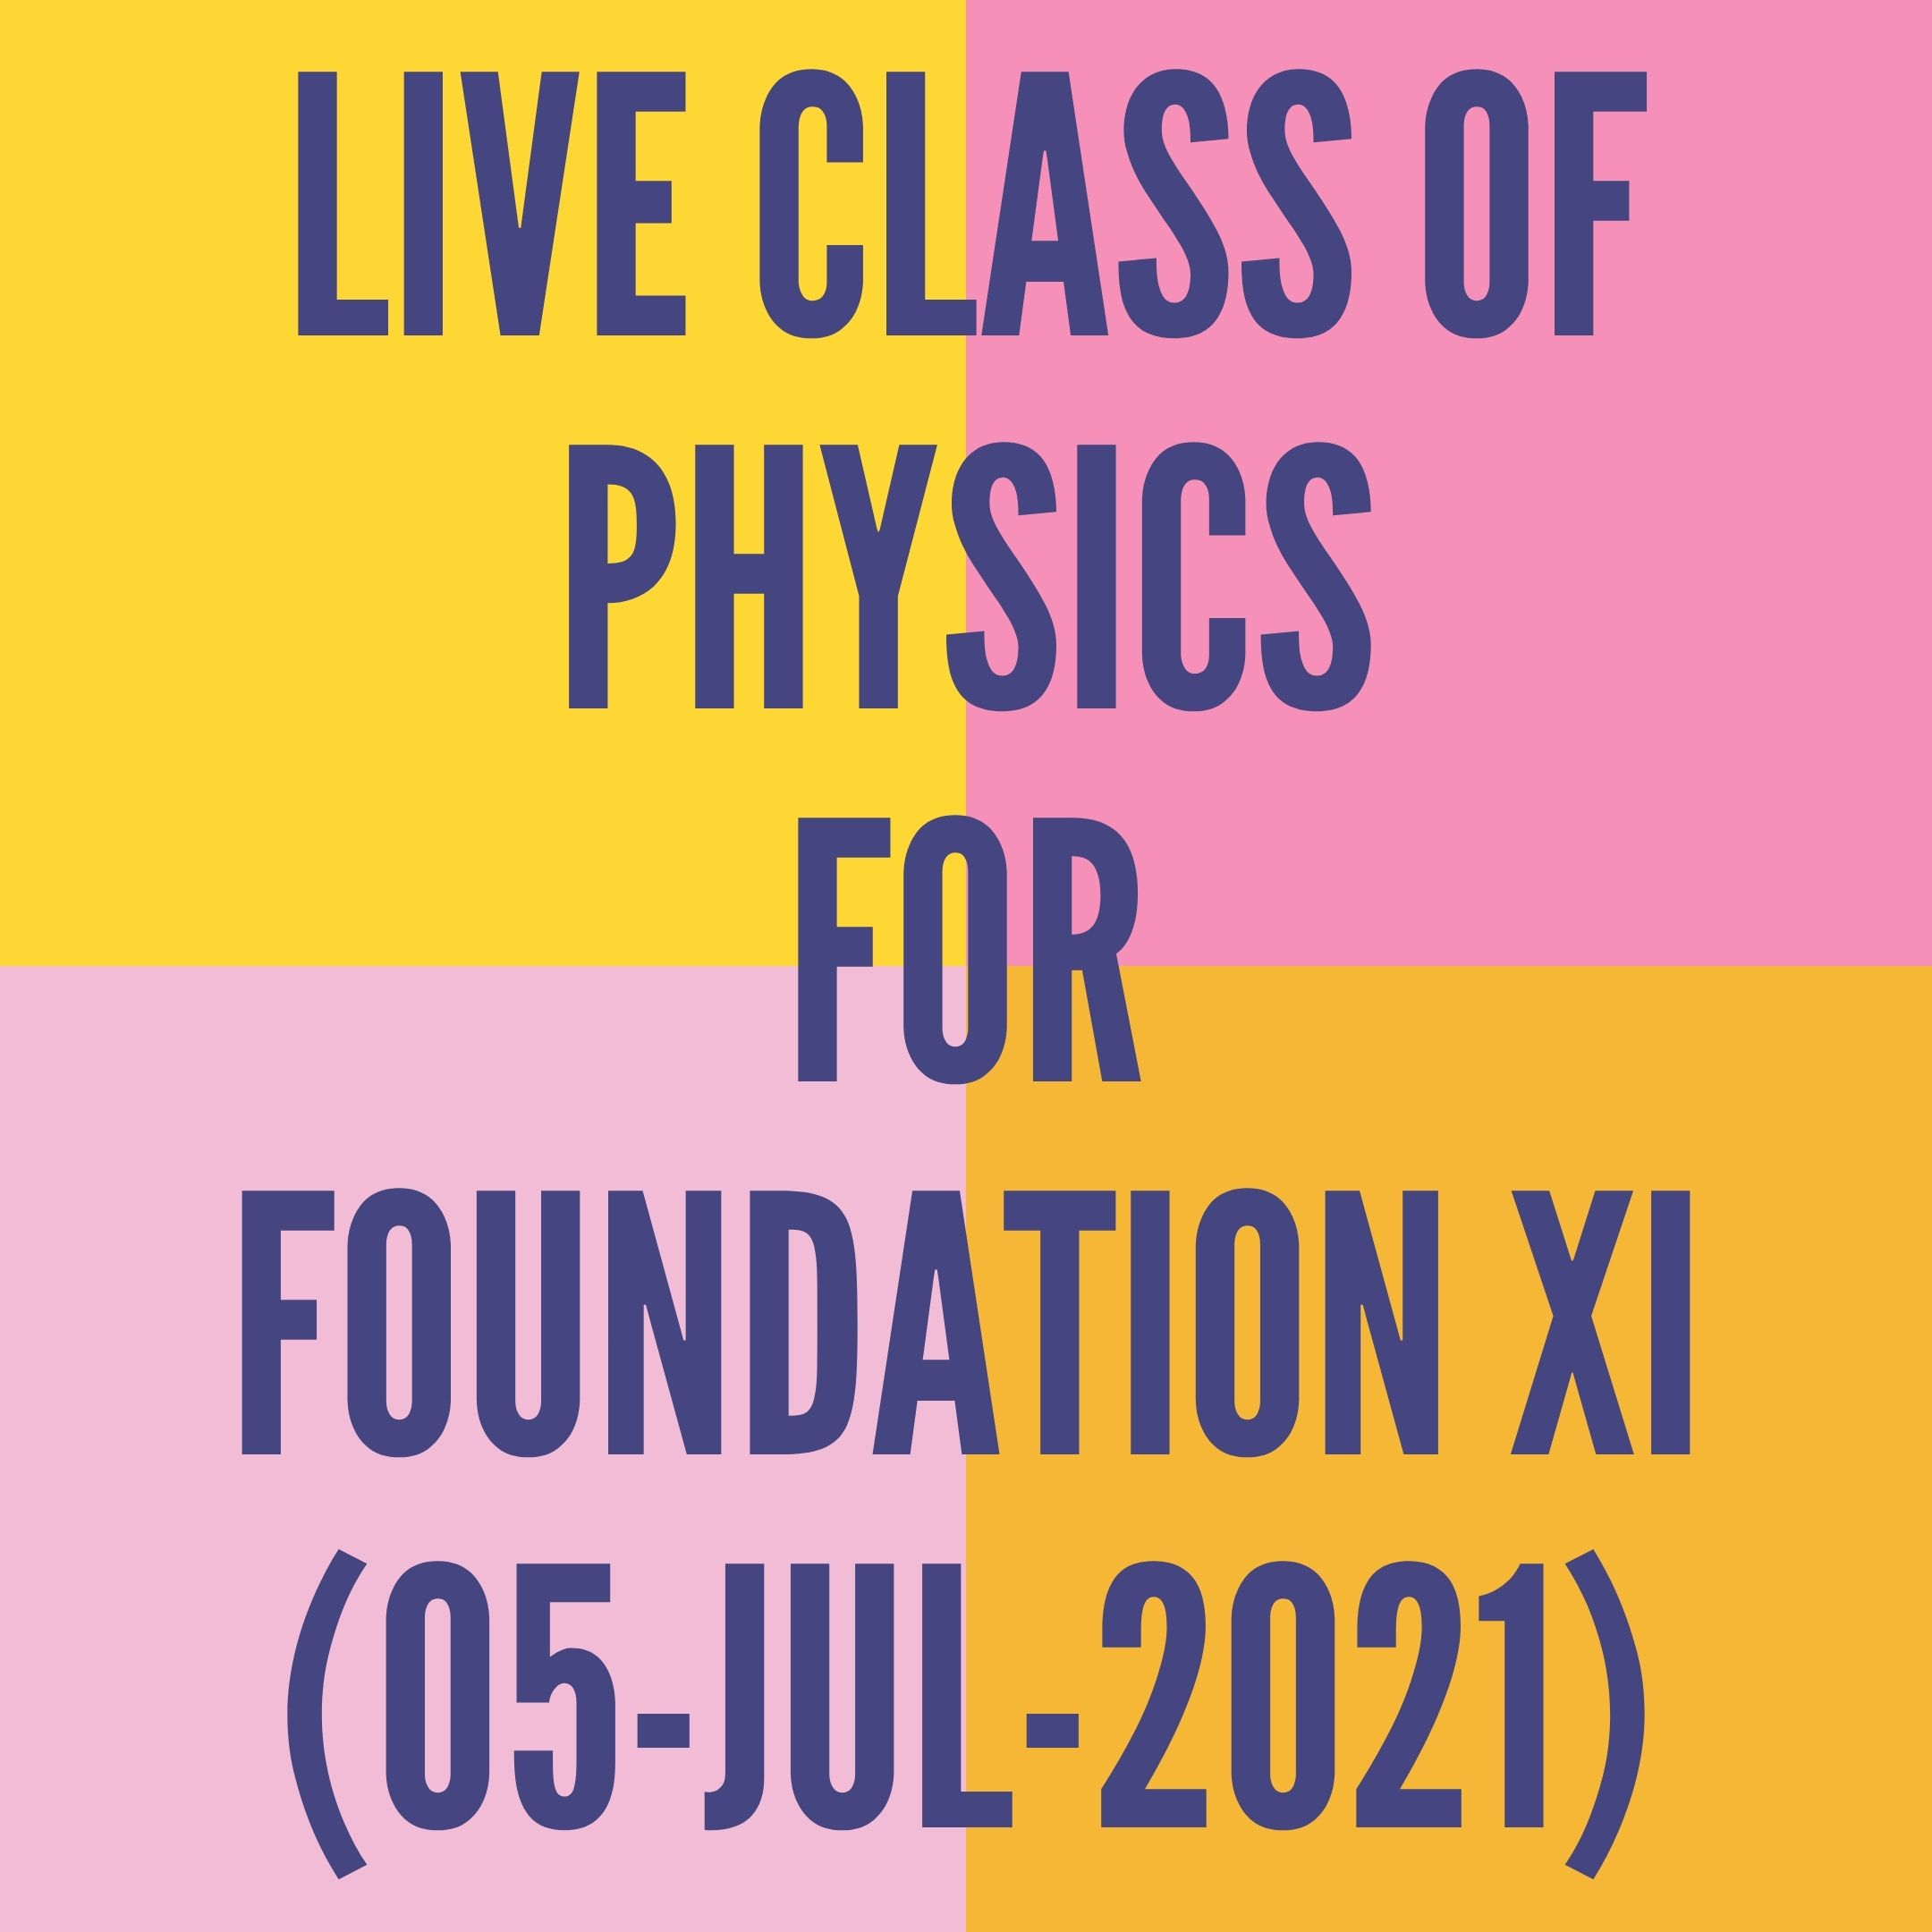 LIVE CLASS OF PHYSICS FOR FOUNDATION XI (05-JUL-2021) APPLIED MATH